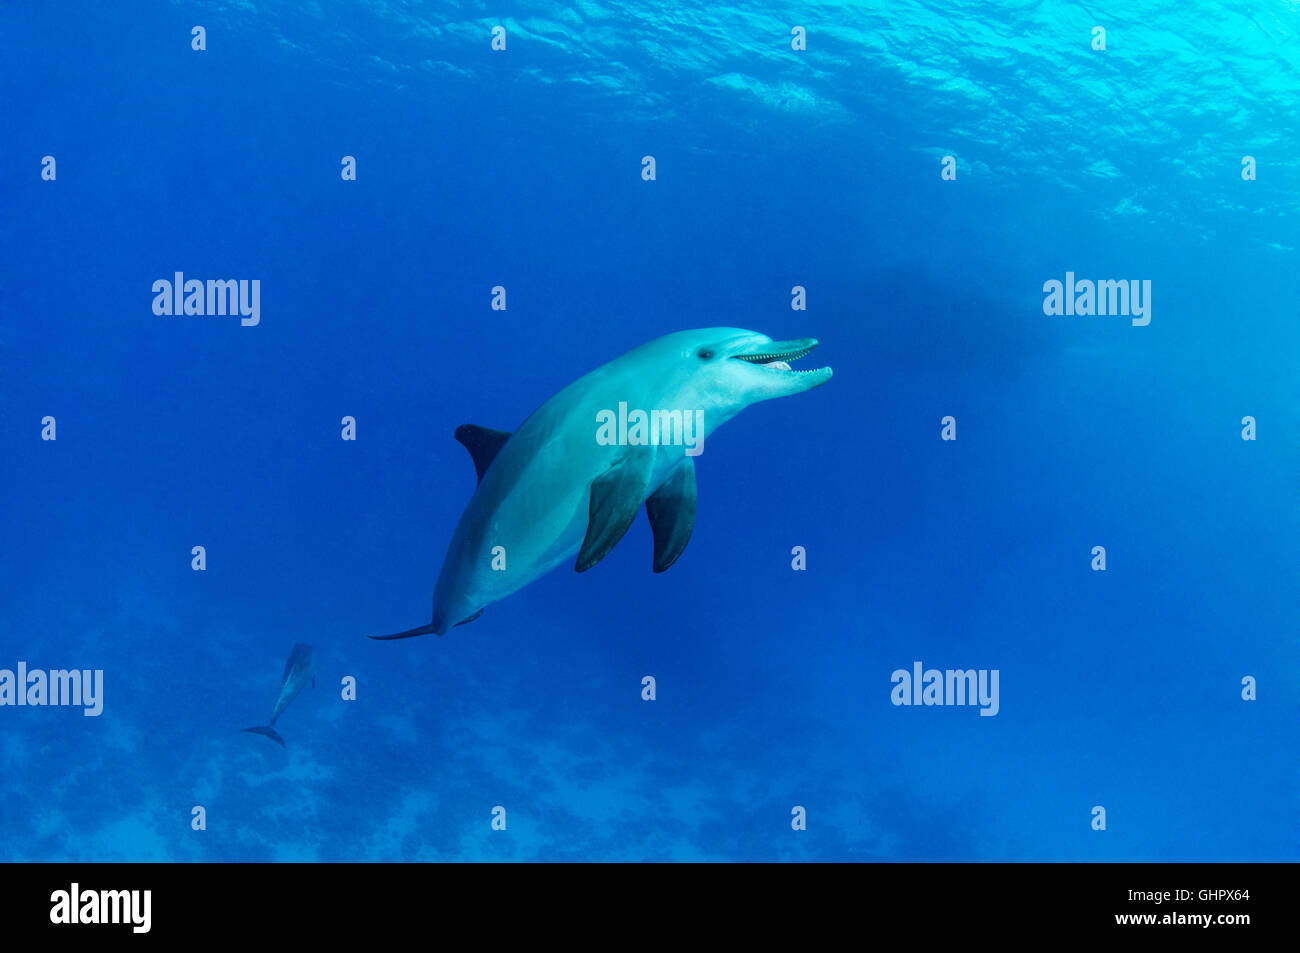 Tursiops aduncus, Indian Ocean bottlenose dolphin, Abu Nuhas, Yellow Fish Reef, Red Sea, Egypt, Africa - Stock Image